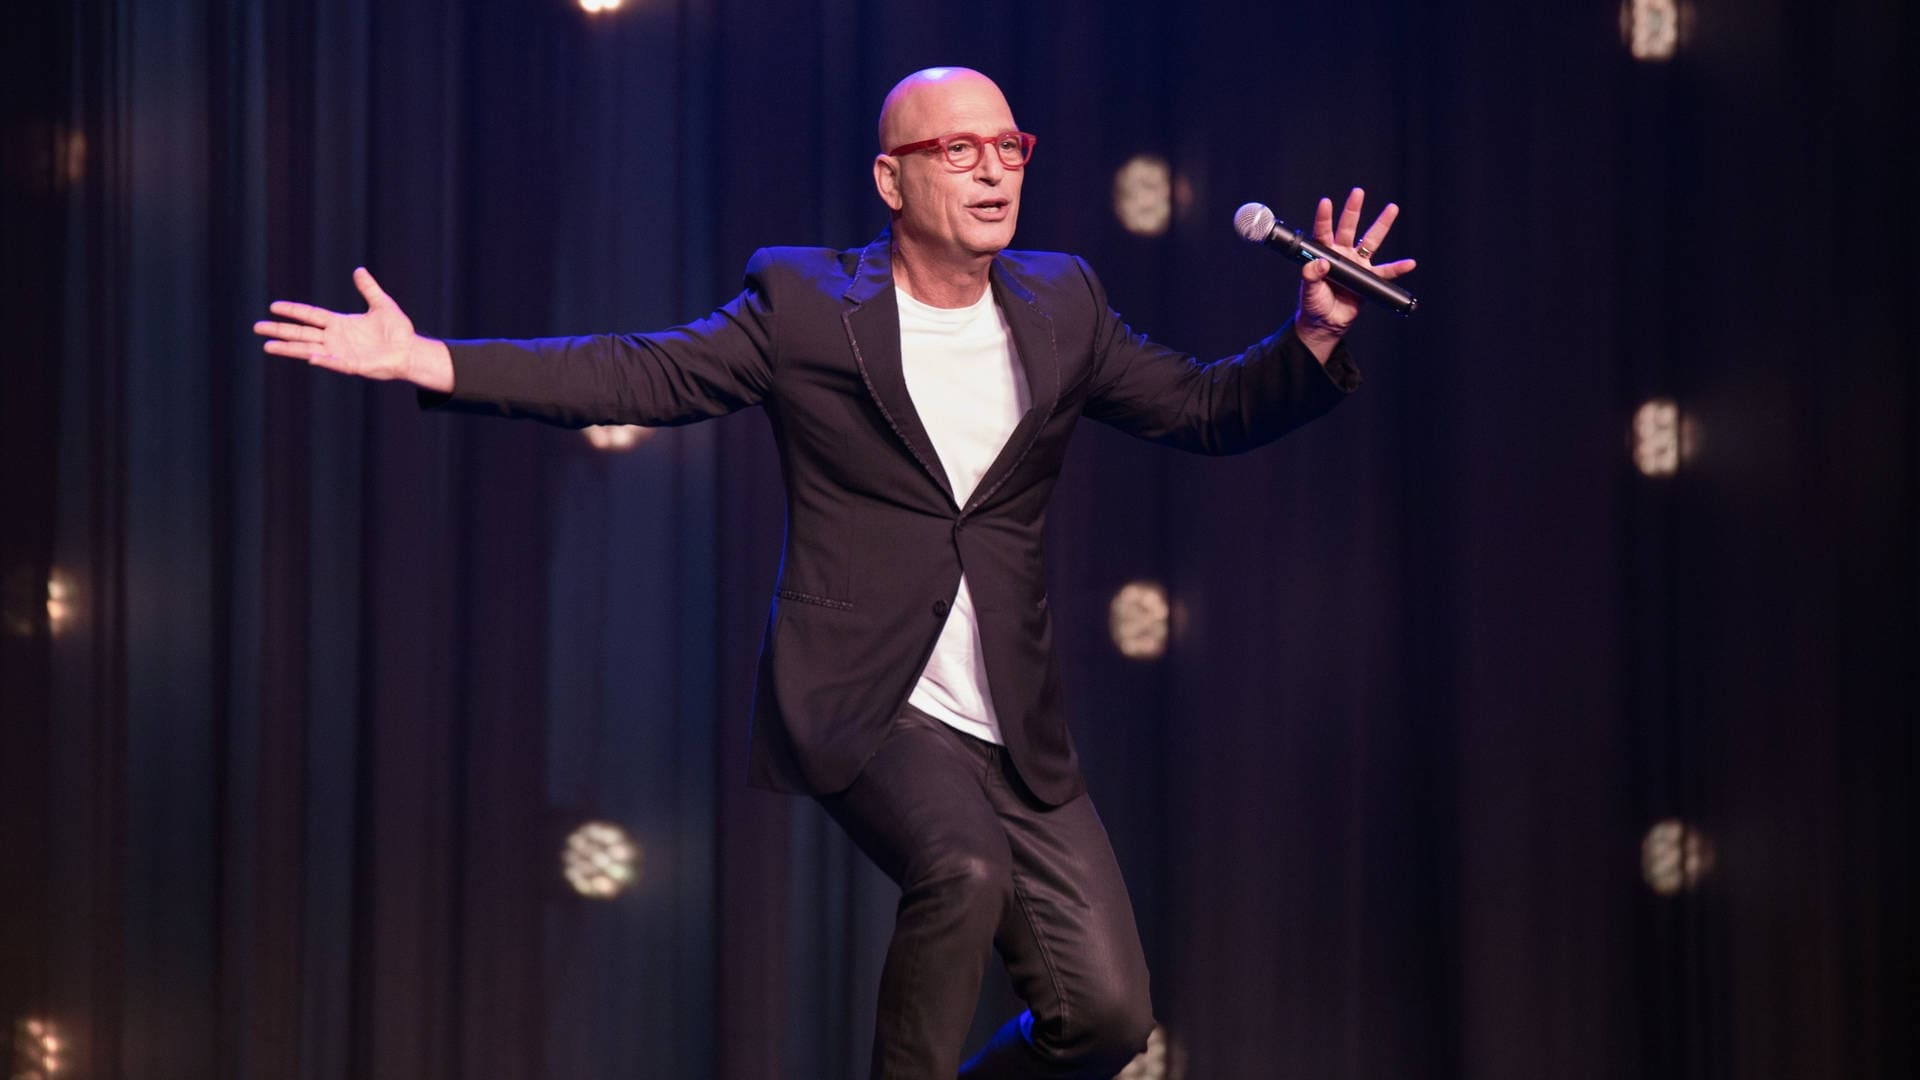 Howie Mandel Presents Howie Mandel at the Howie Mandel Comedy Club